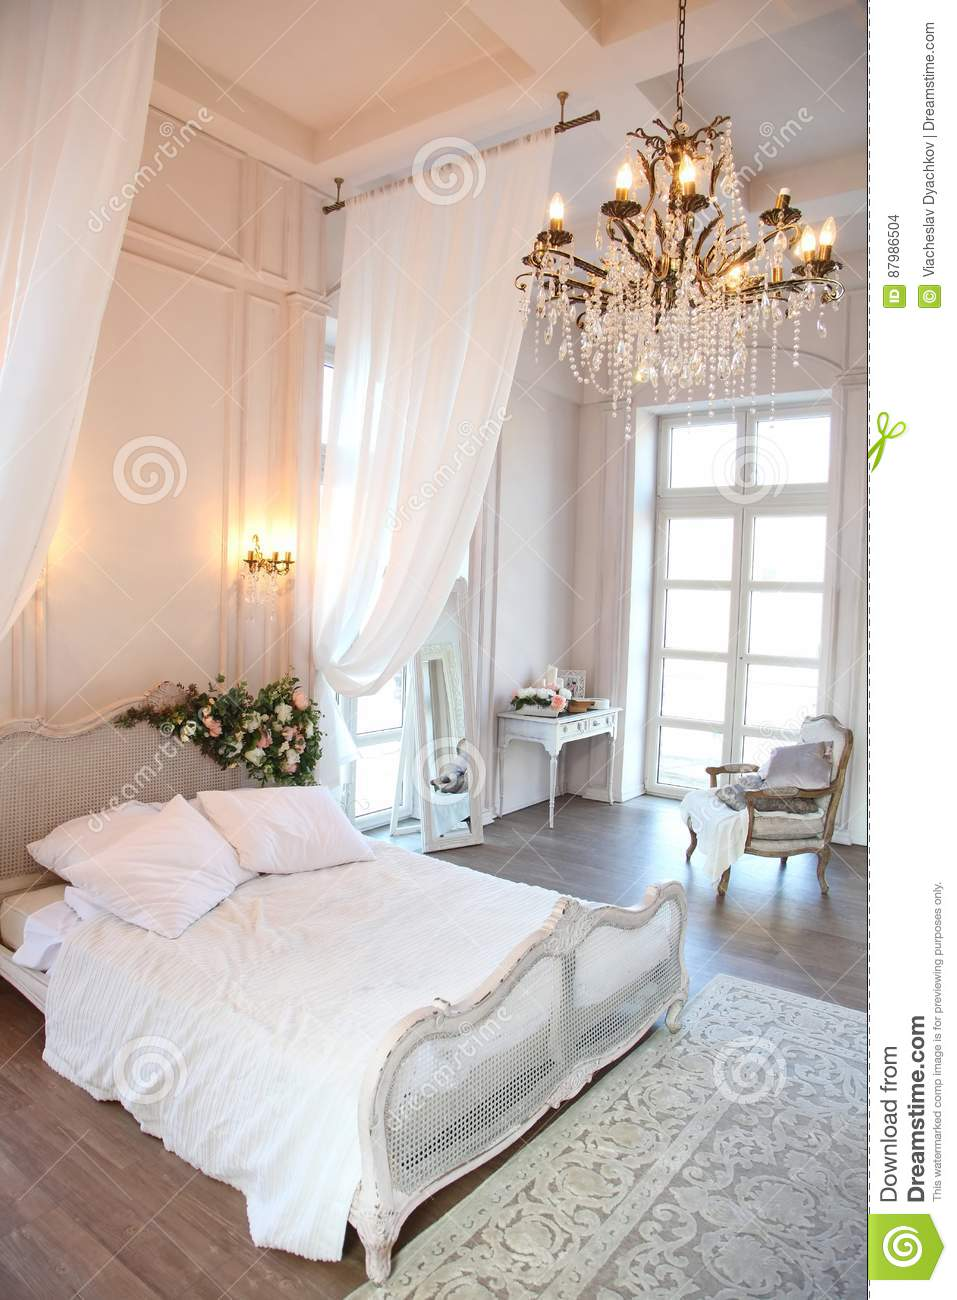 The Interior Of A Beautiful Bedroom Suite In Bright White ...